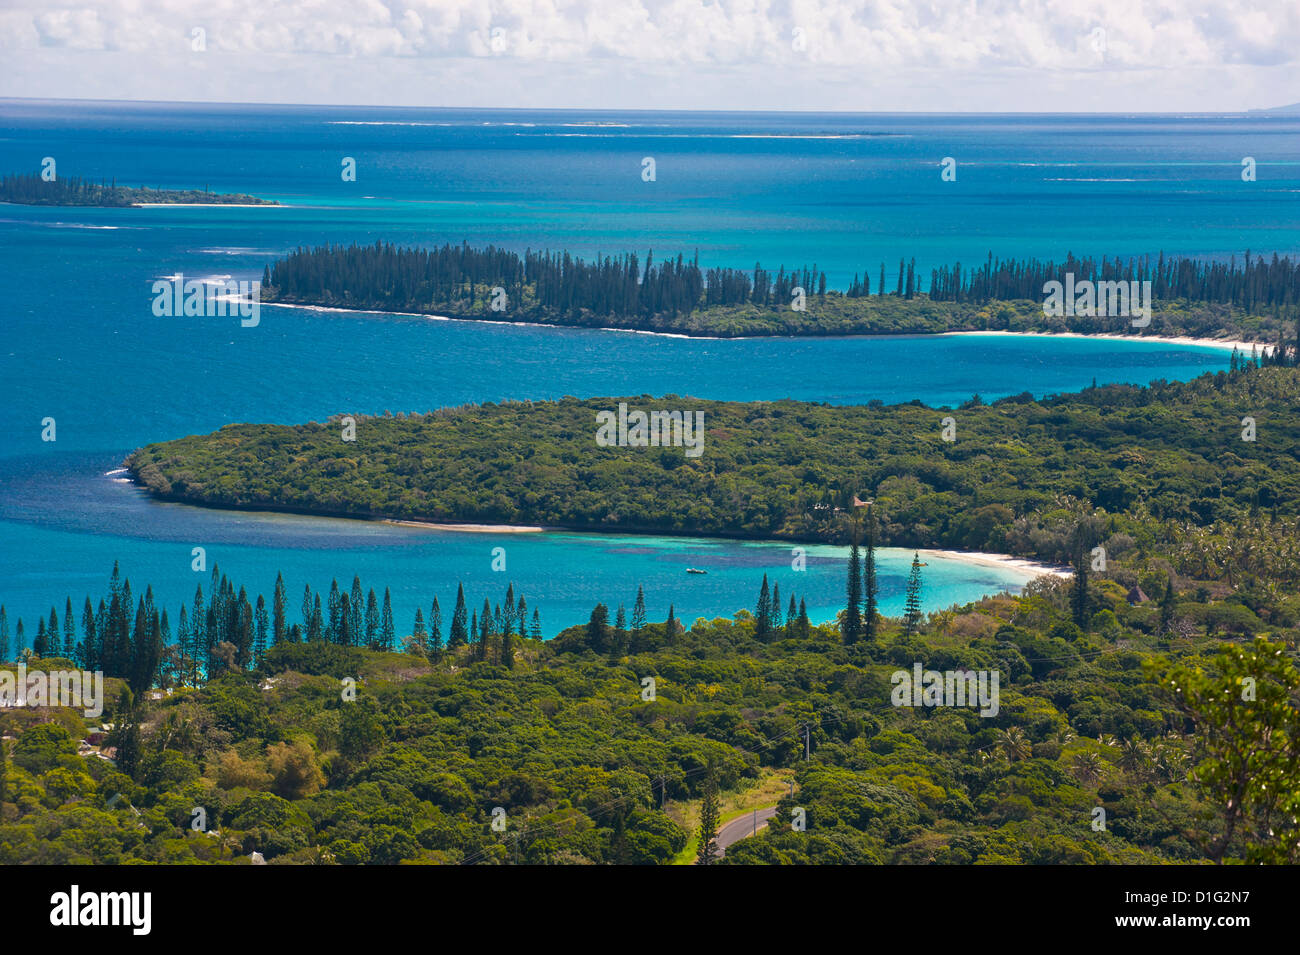 View over the Ile des Pins, New Caledonia, Melanesia, South Pacific, Pacific - Stock Image